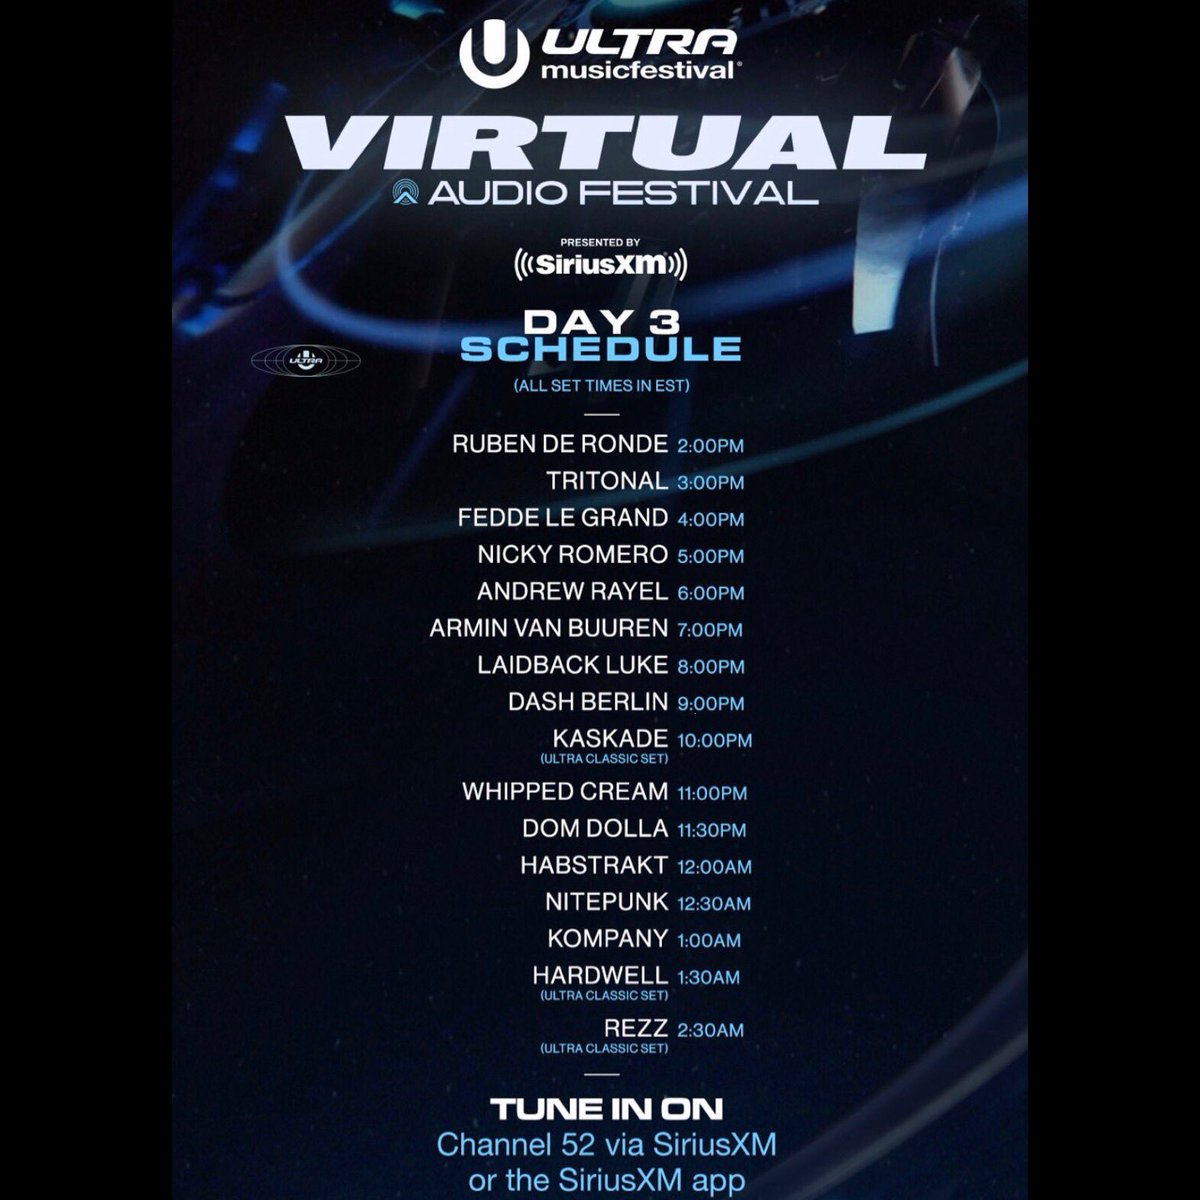 ULTRA Virtual Audio Festival set times for East coast 🇺🇸 and France 🇫🇷